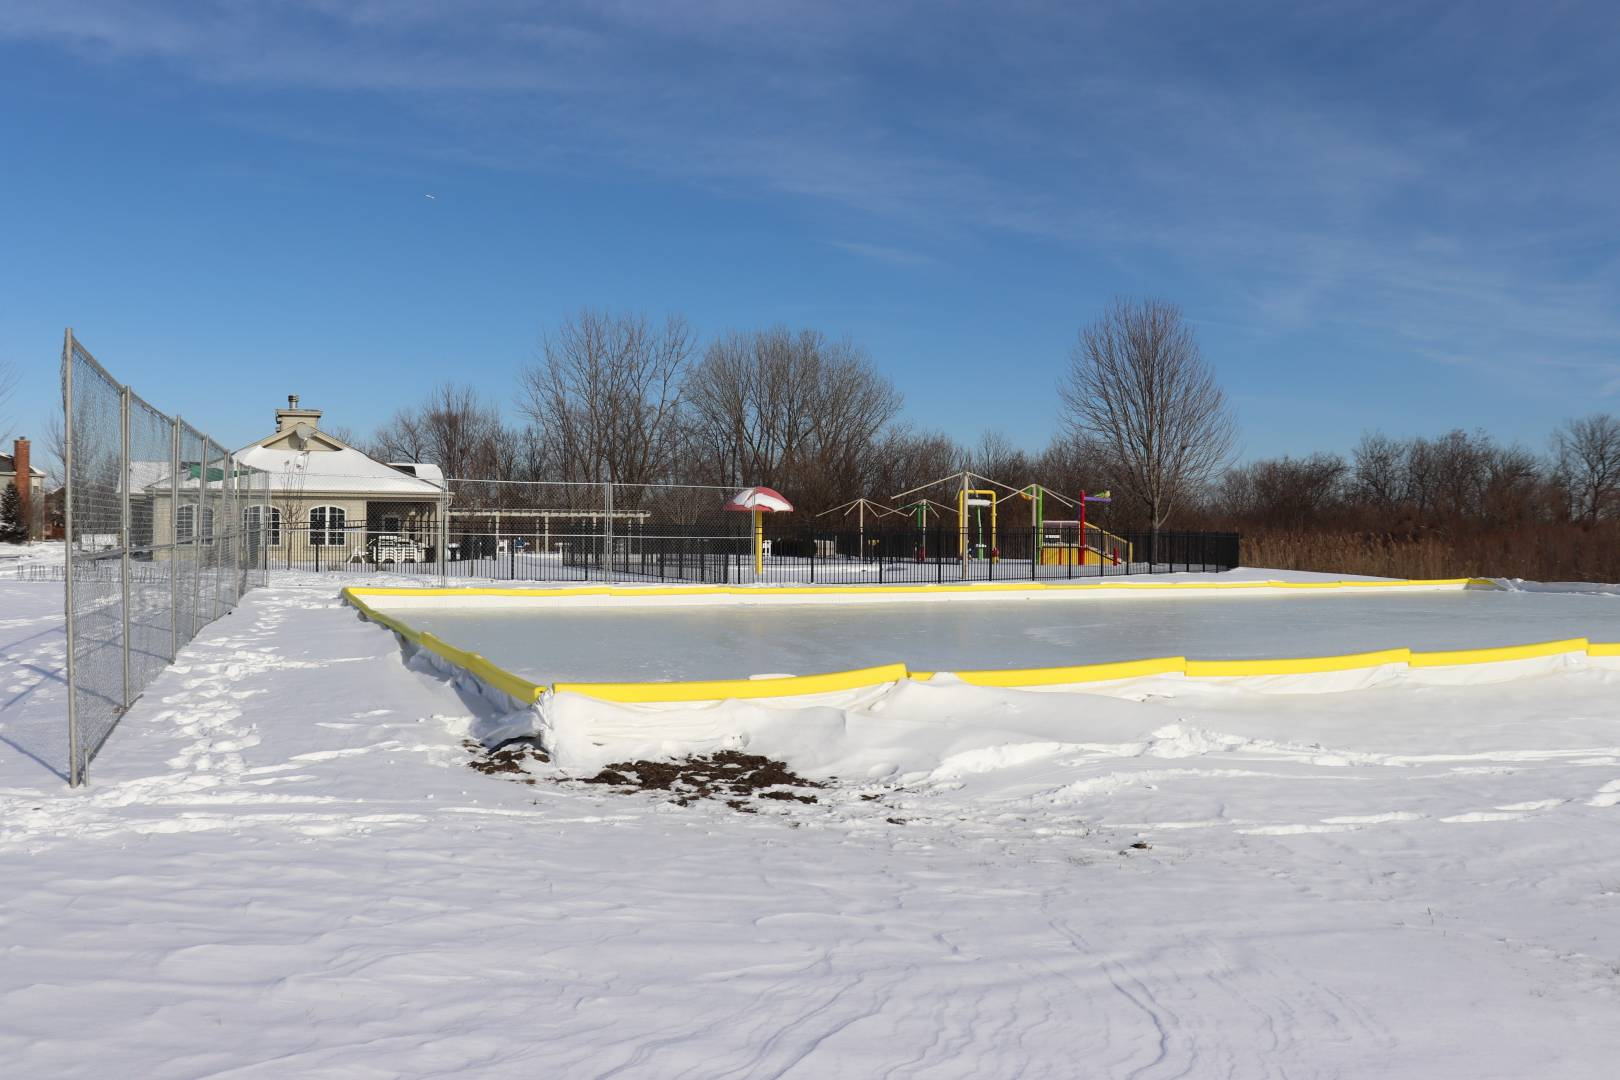 An Additional Outdoor Ice Skating Rink Will Be Available In The Gry Area Next To Mill Creek Pool 39w125 South Drive